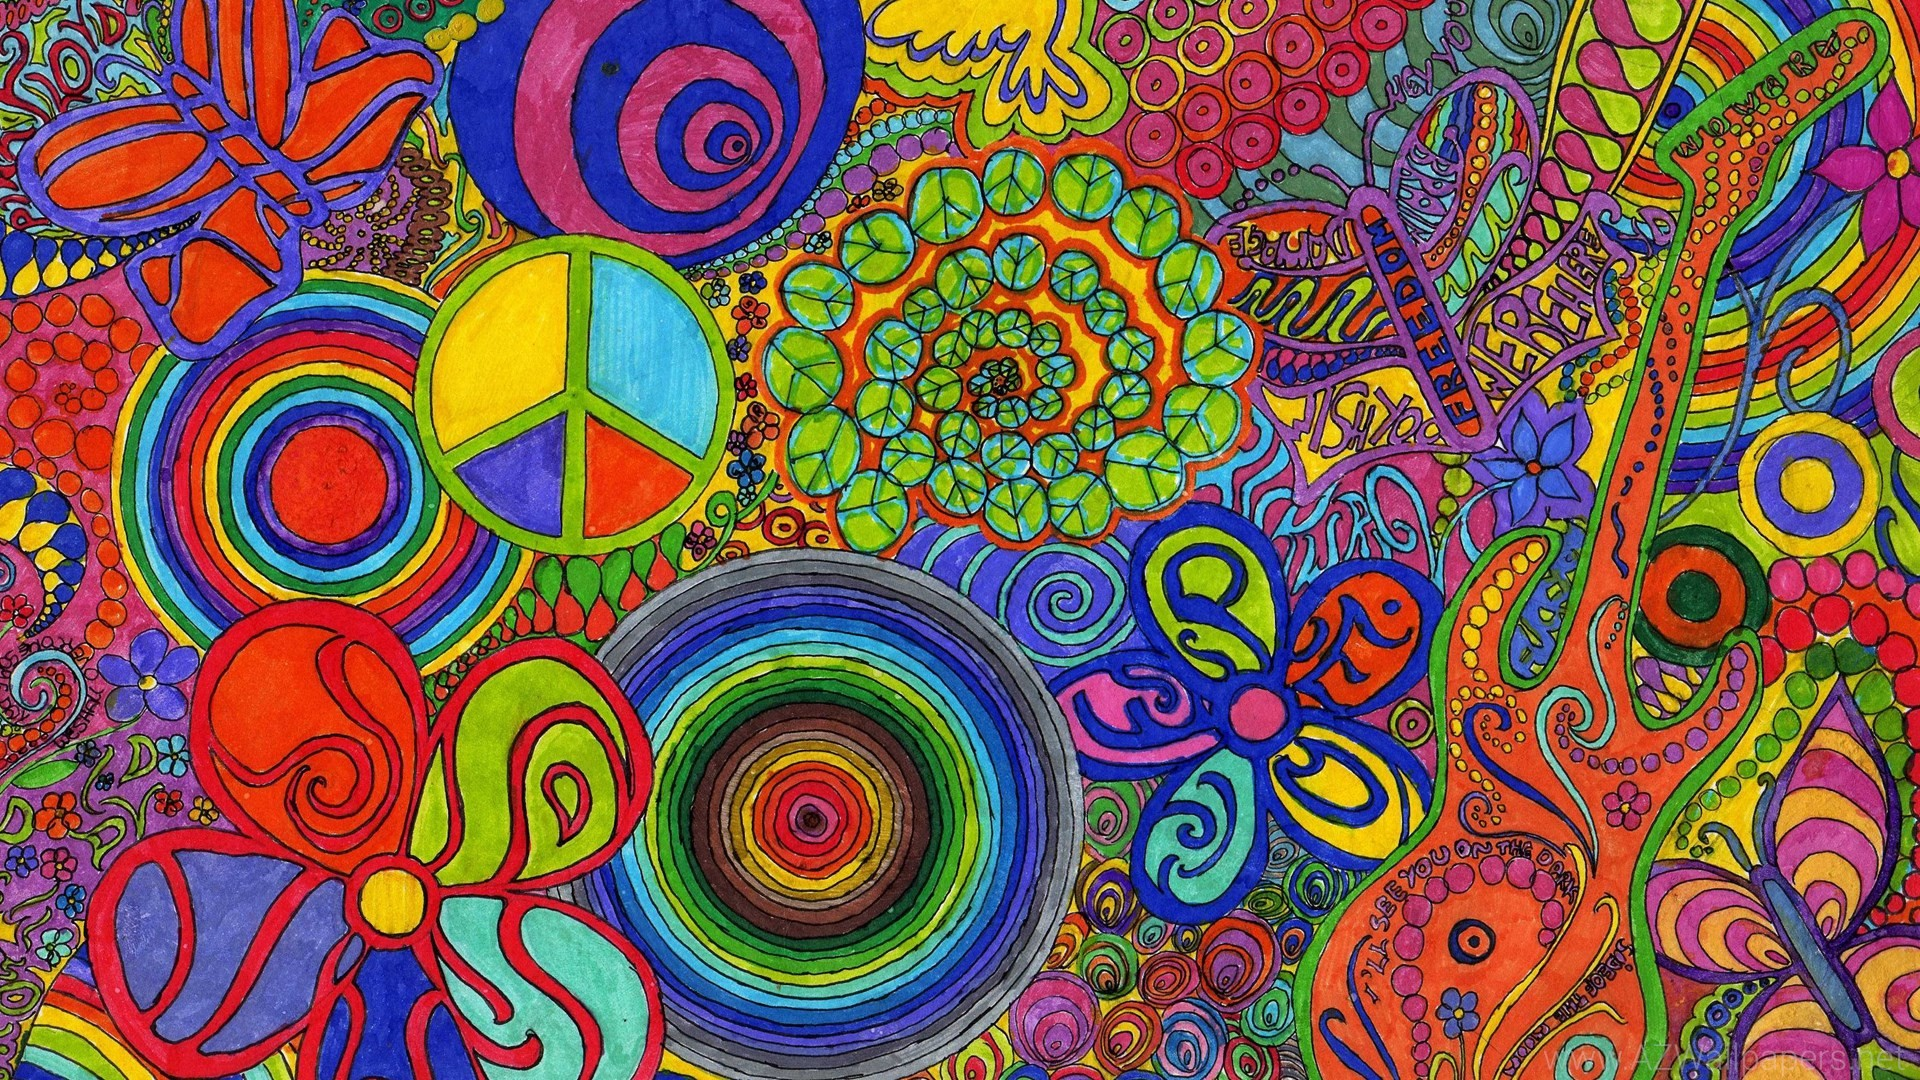 Agreeable Hippie Wallpaper Trippy Psychedelic The Sky HD Wallpaper .